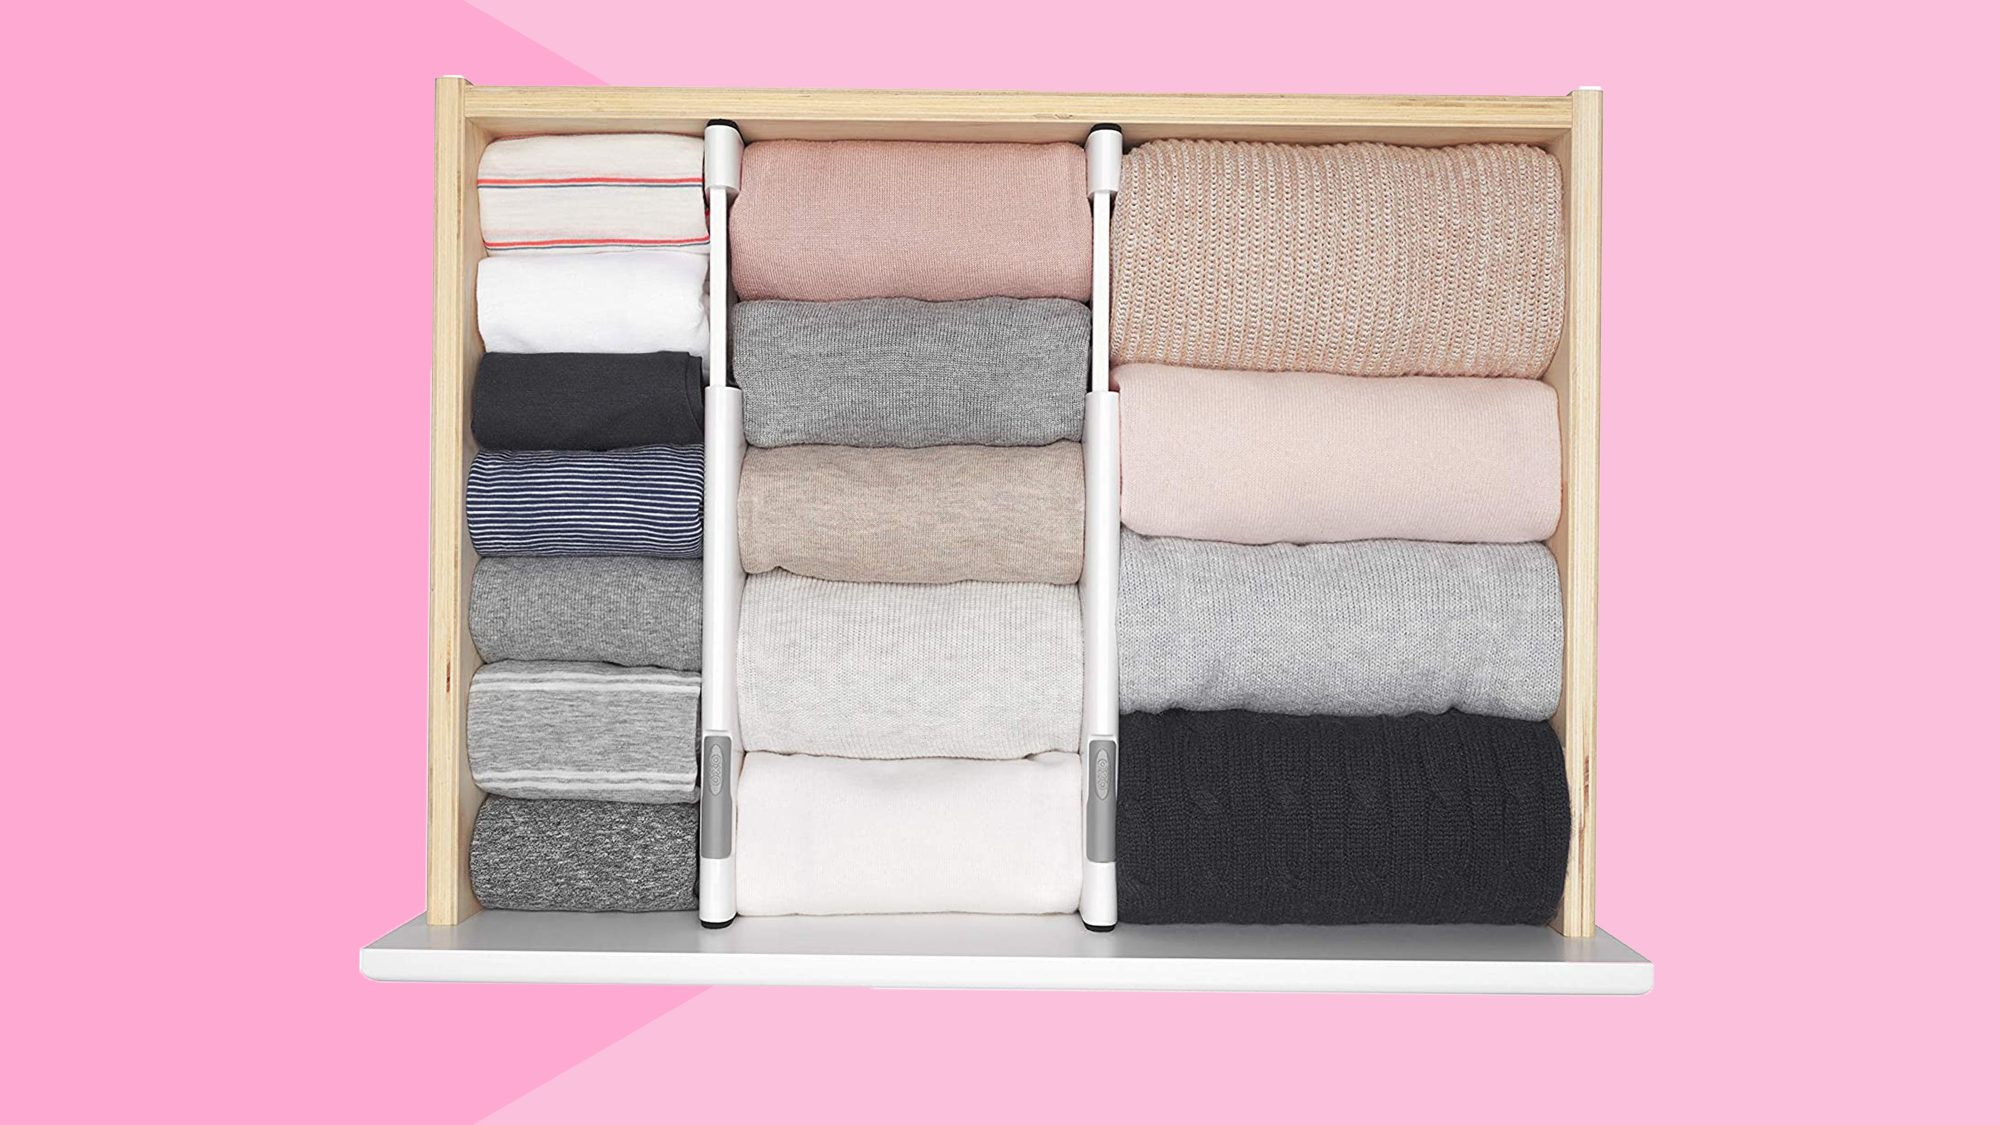 Houseware Closet Underwear Organizer Drawer Divider on Amazon